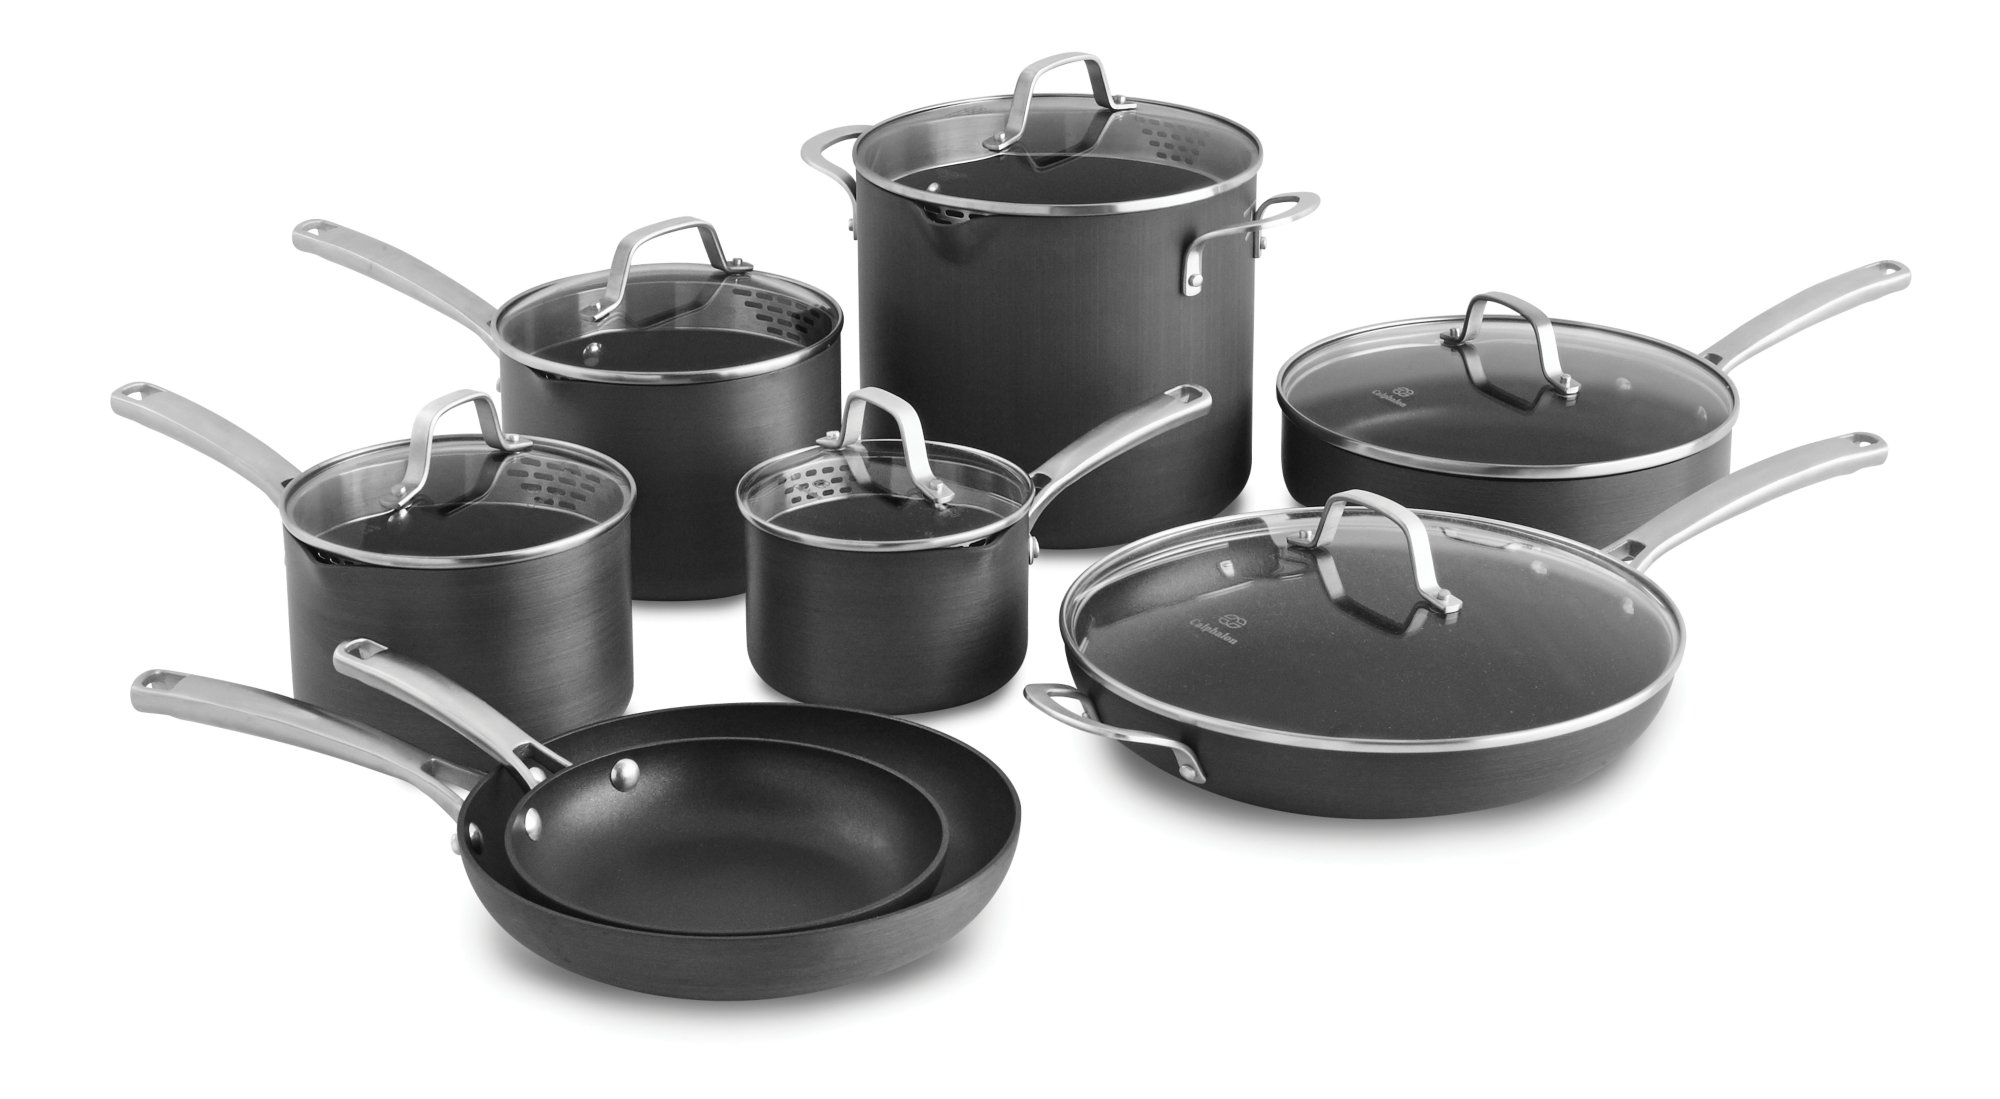 OUR BRANDS. Meyer Corporation, U.S. and its affiliates develop, manufacture, and distribute kitchenware, primarily cookware. Our flagship brands Circulon® and Anolon® lead the gourmet kitchenware category in many of the world's largest consumer markets.